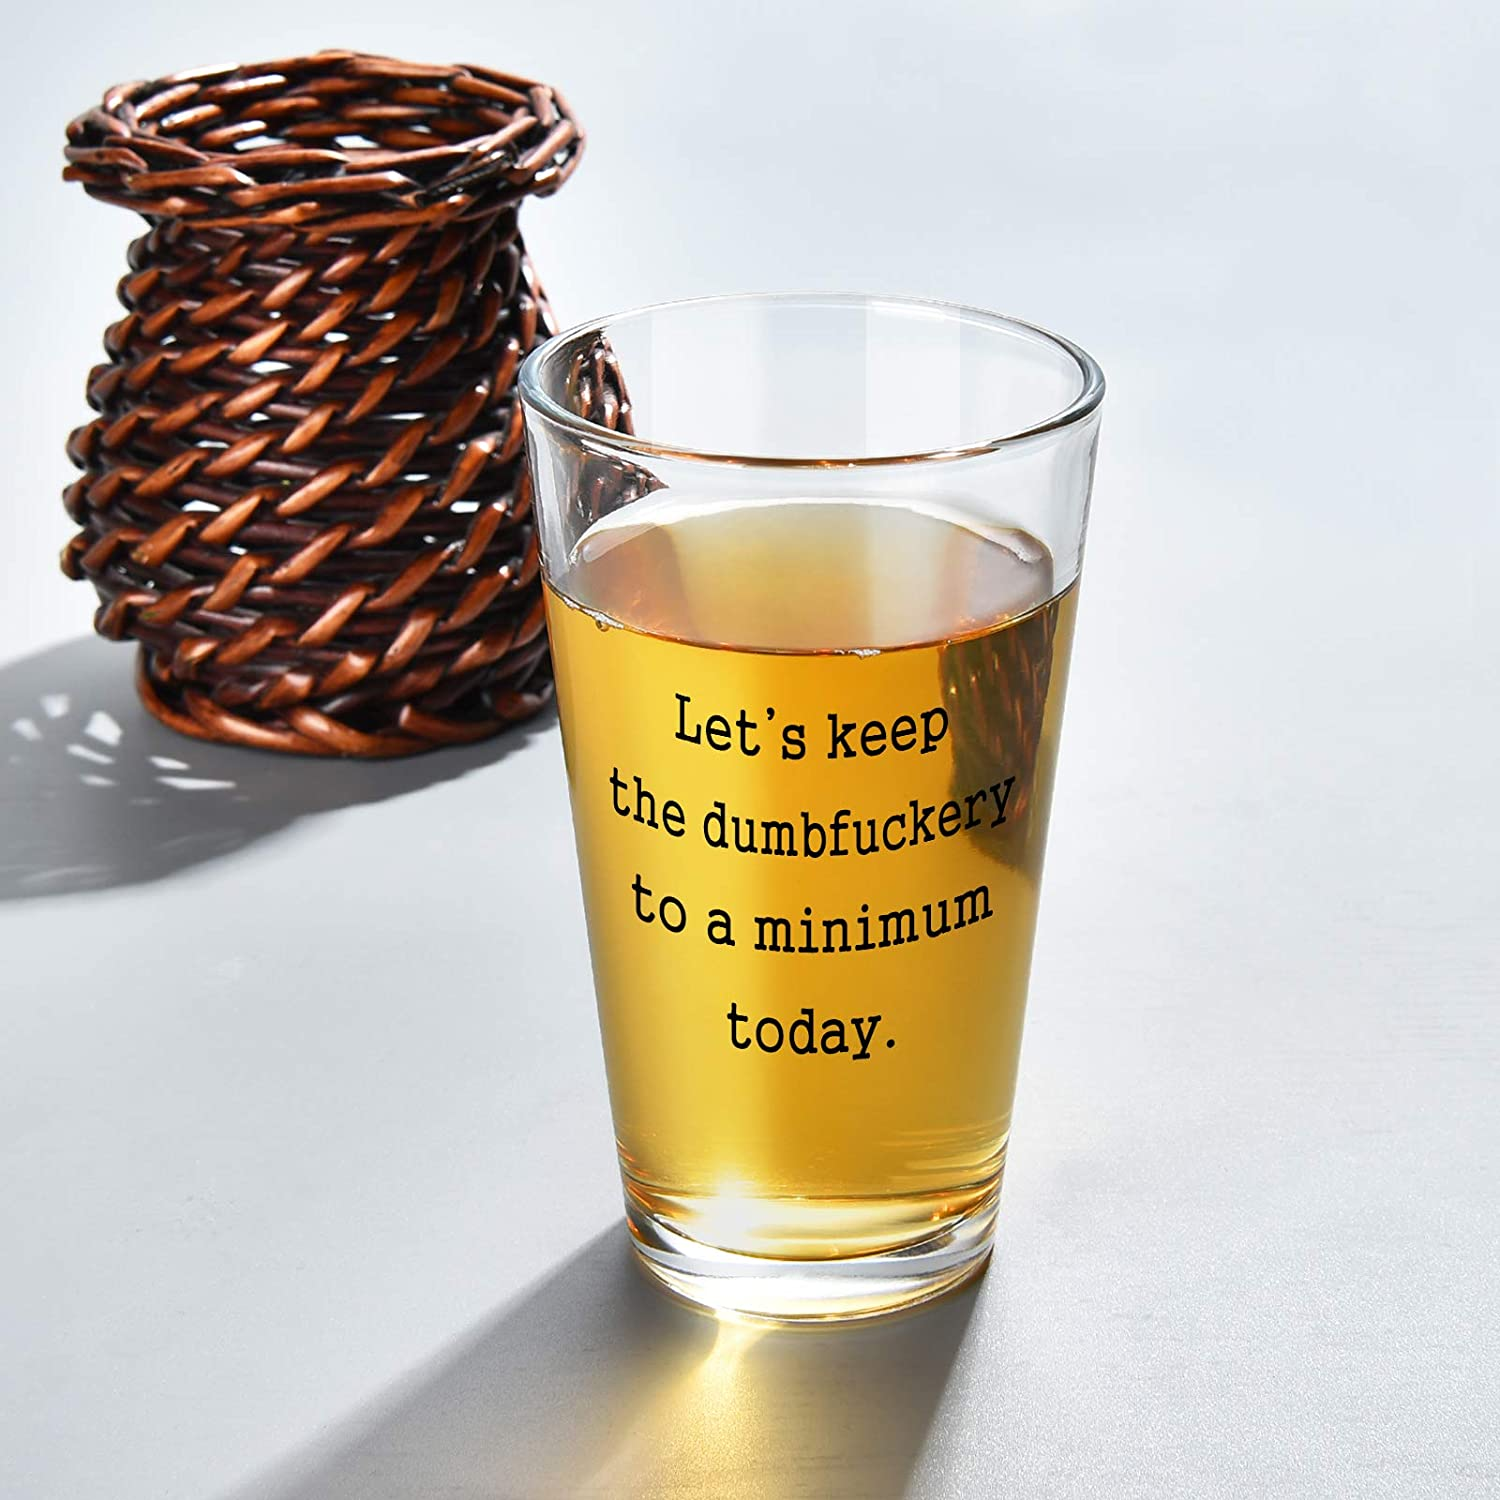 Thanksgiving Best Gift Ideas for Friends Men Funny Beer Glass Lets Keep to A Minimum Today Beer Pint Glass with Funny Sayings Women Festival Birthday Coworkers Unique Gift for Christmas